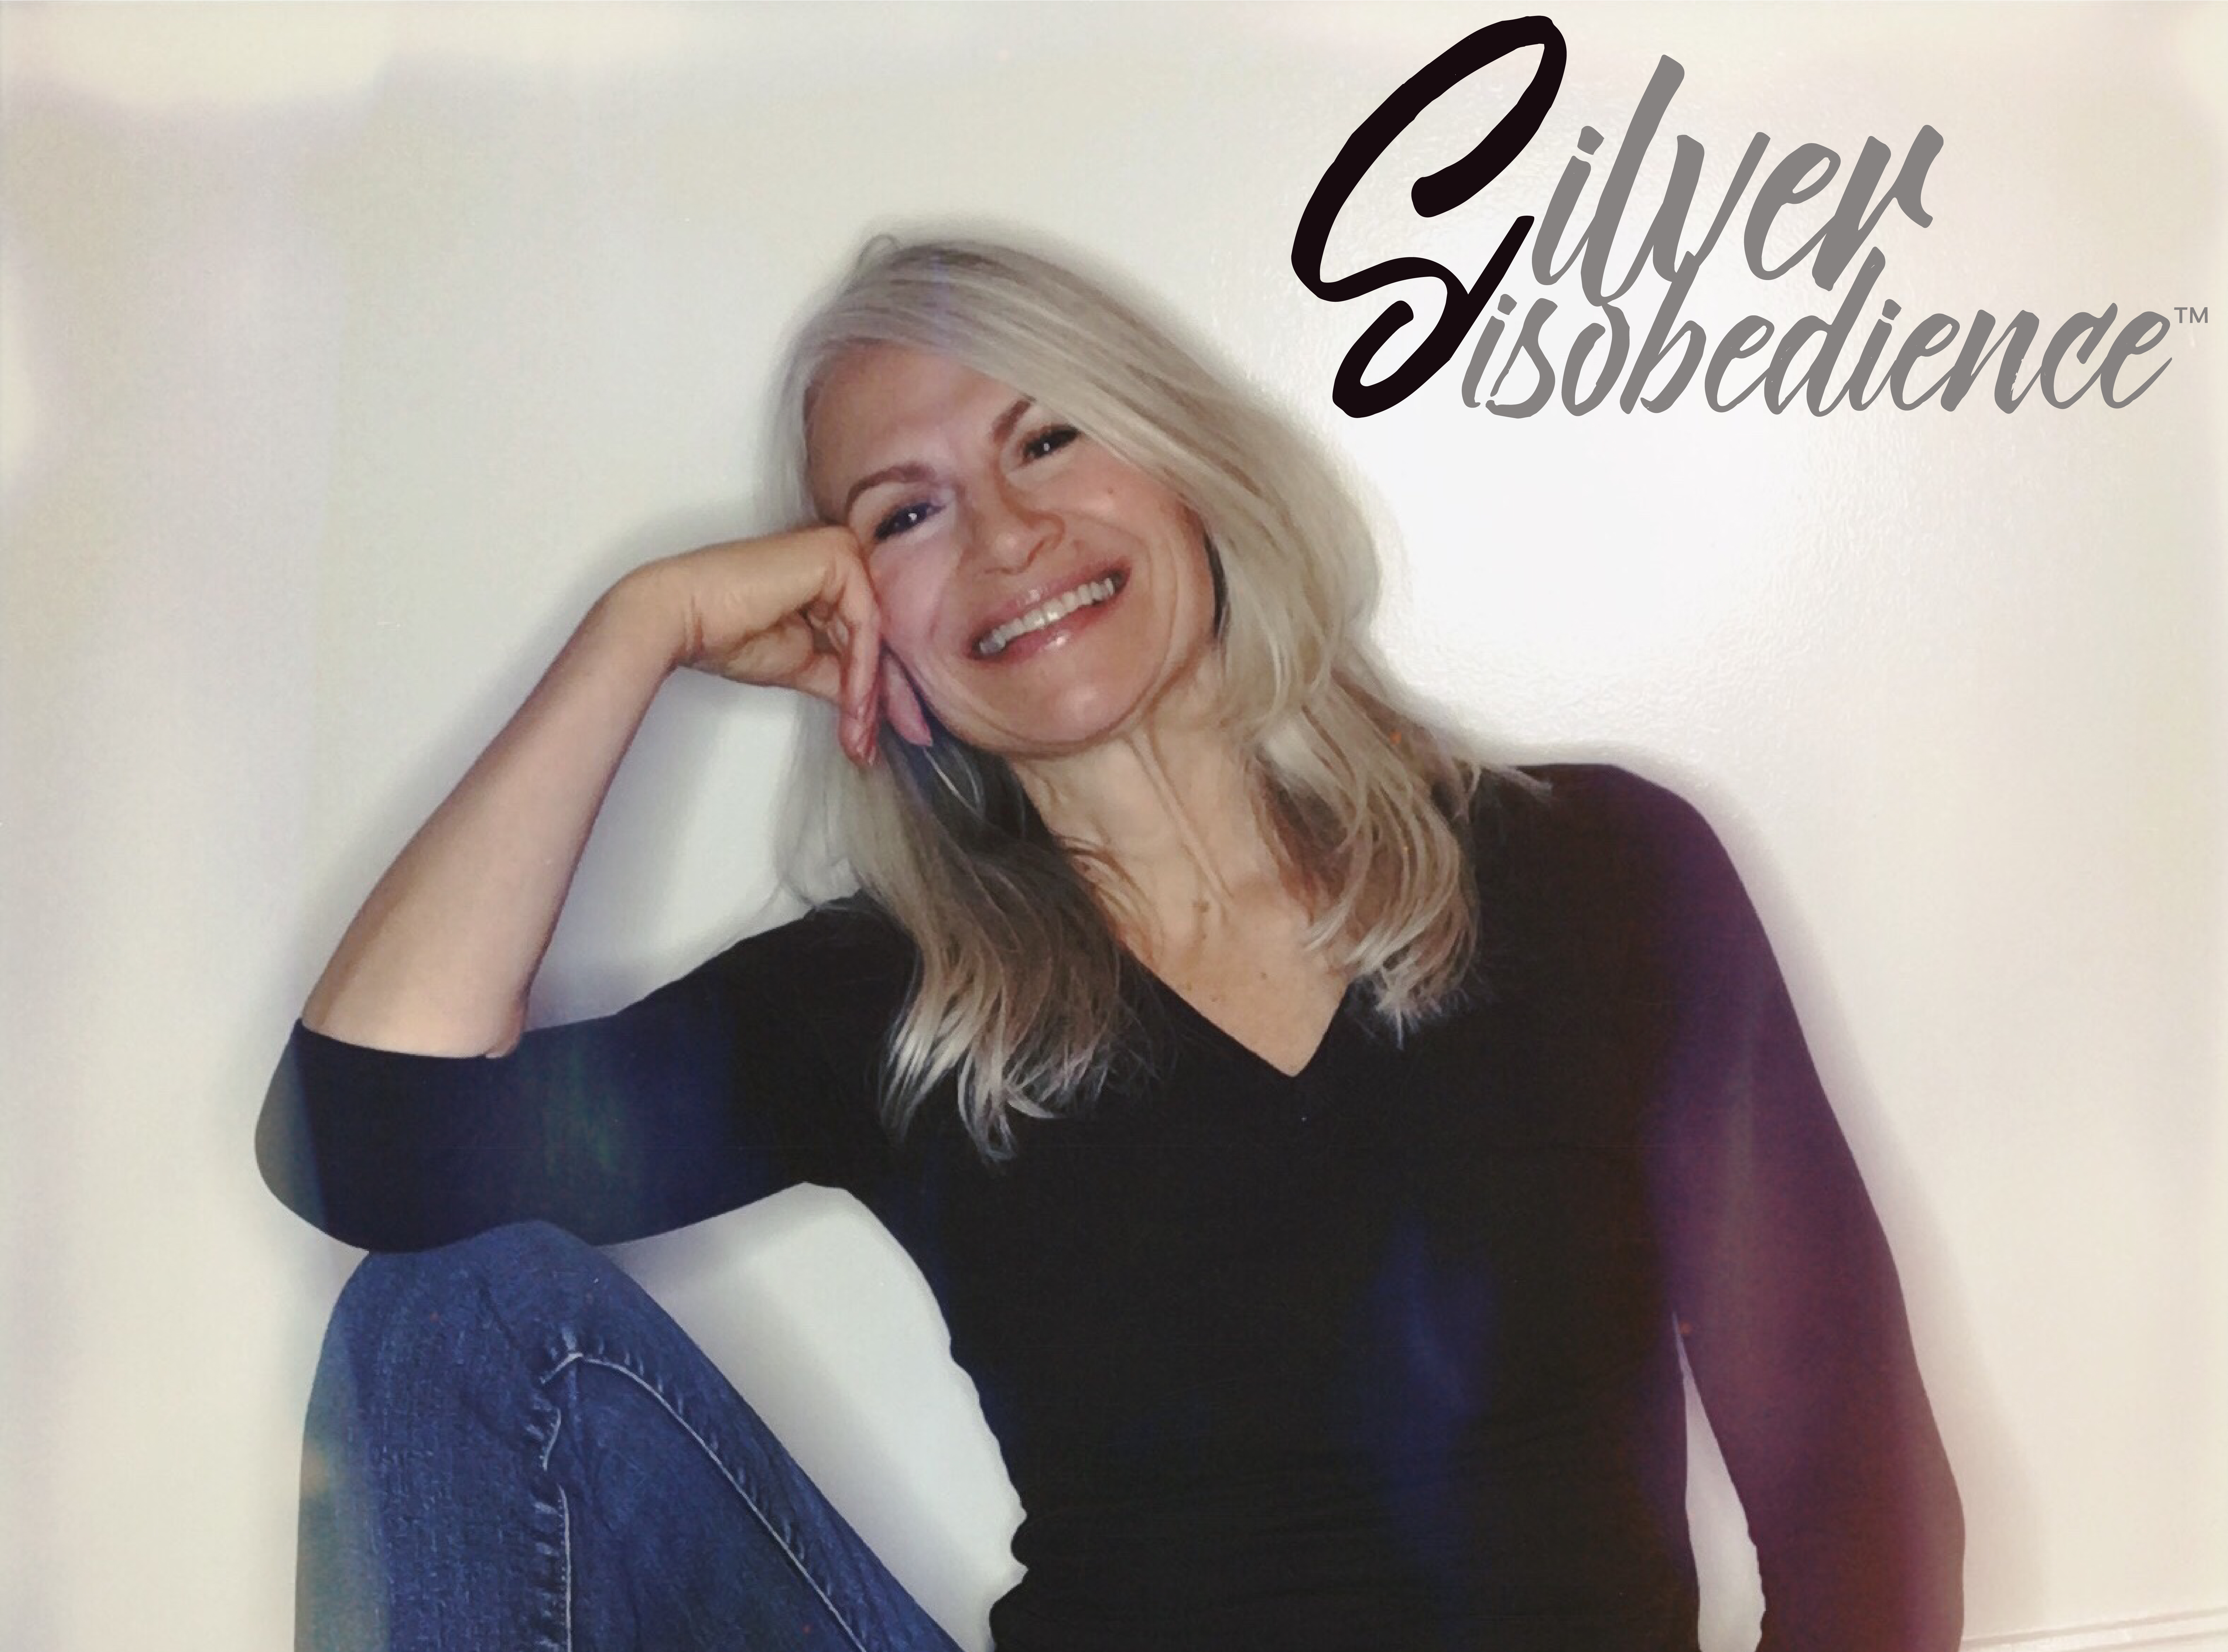 SilverDisobedience Podcast